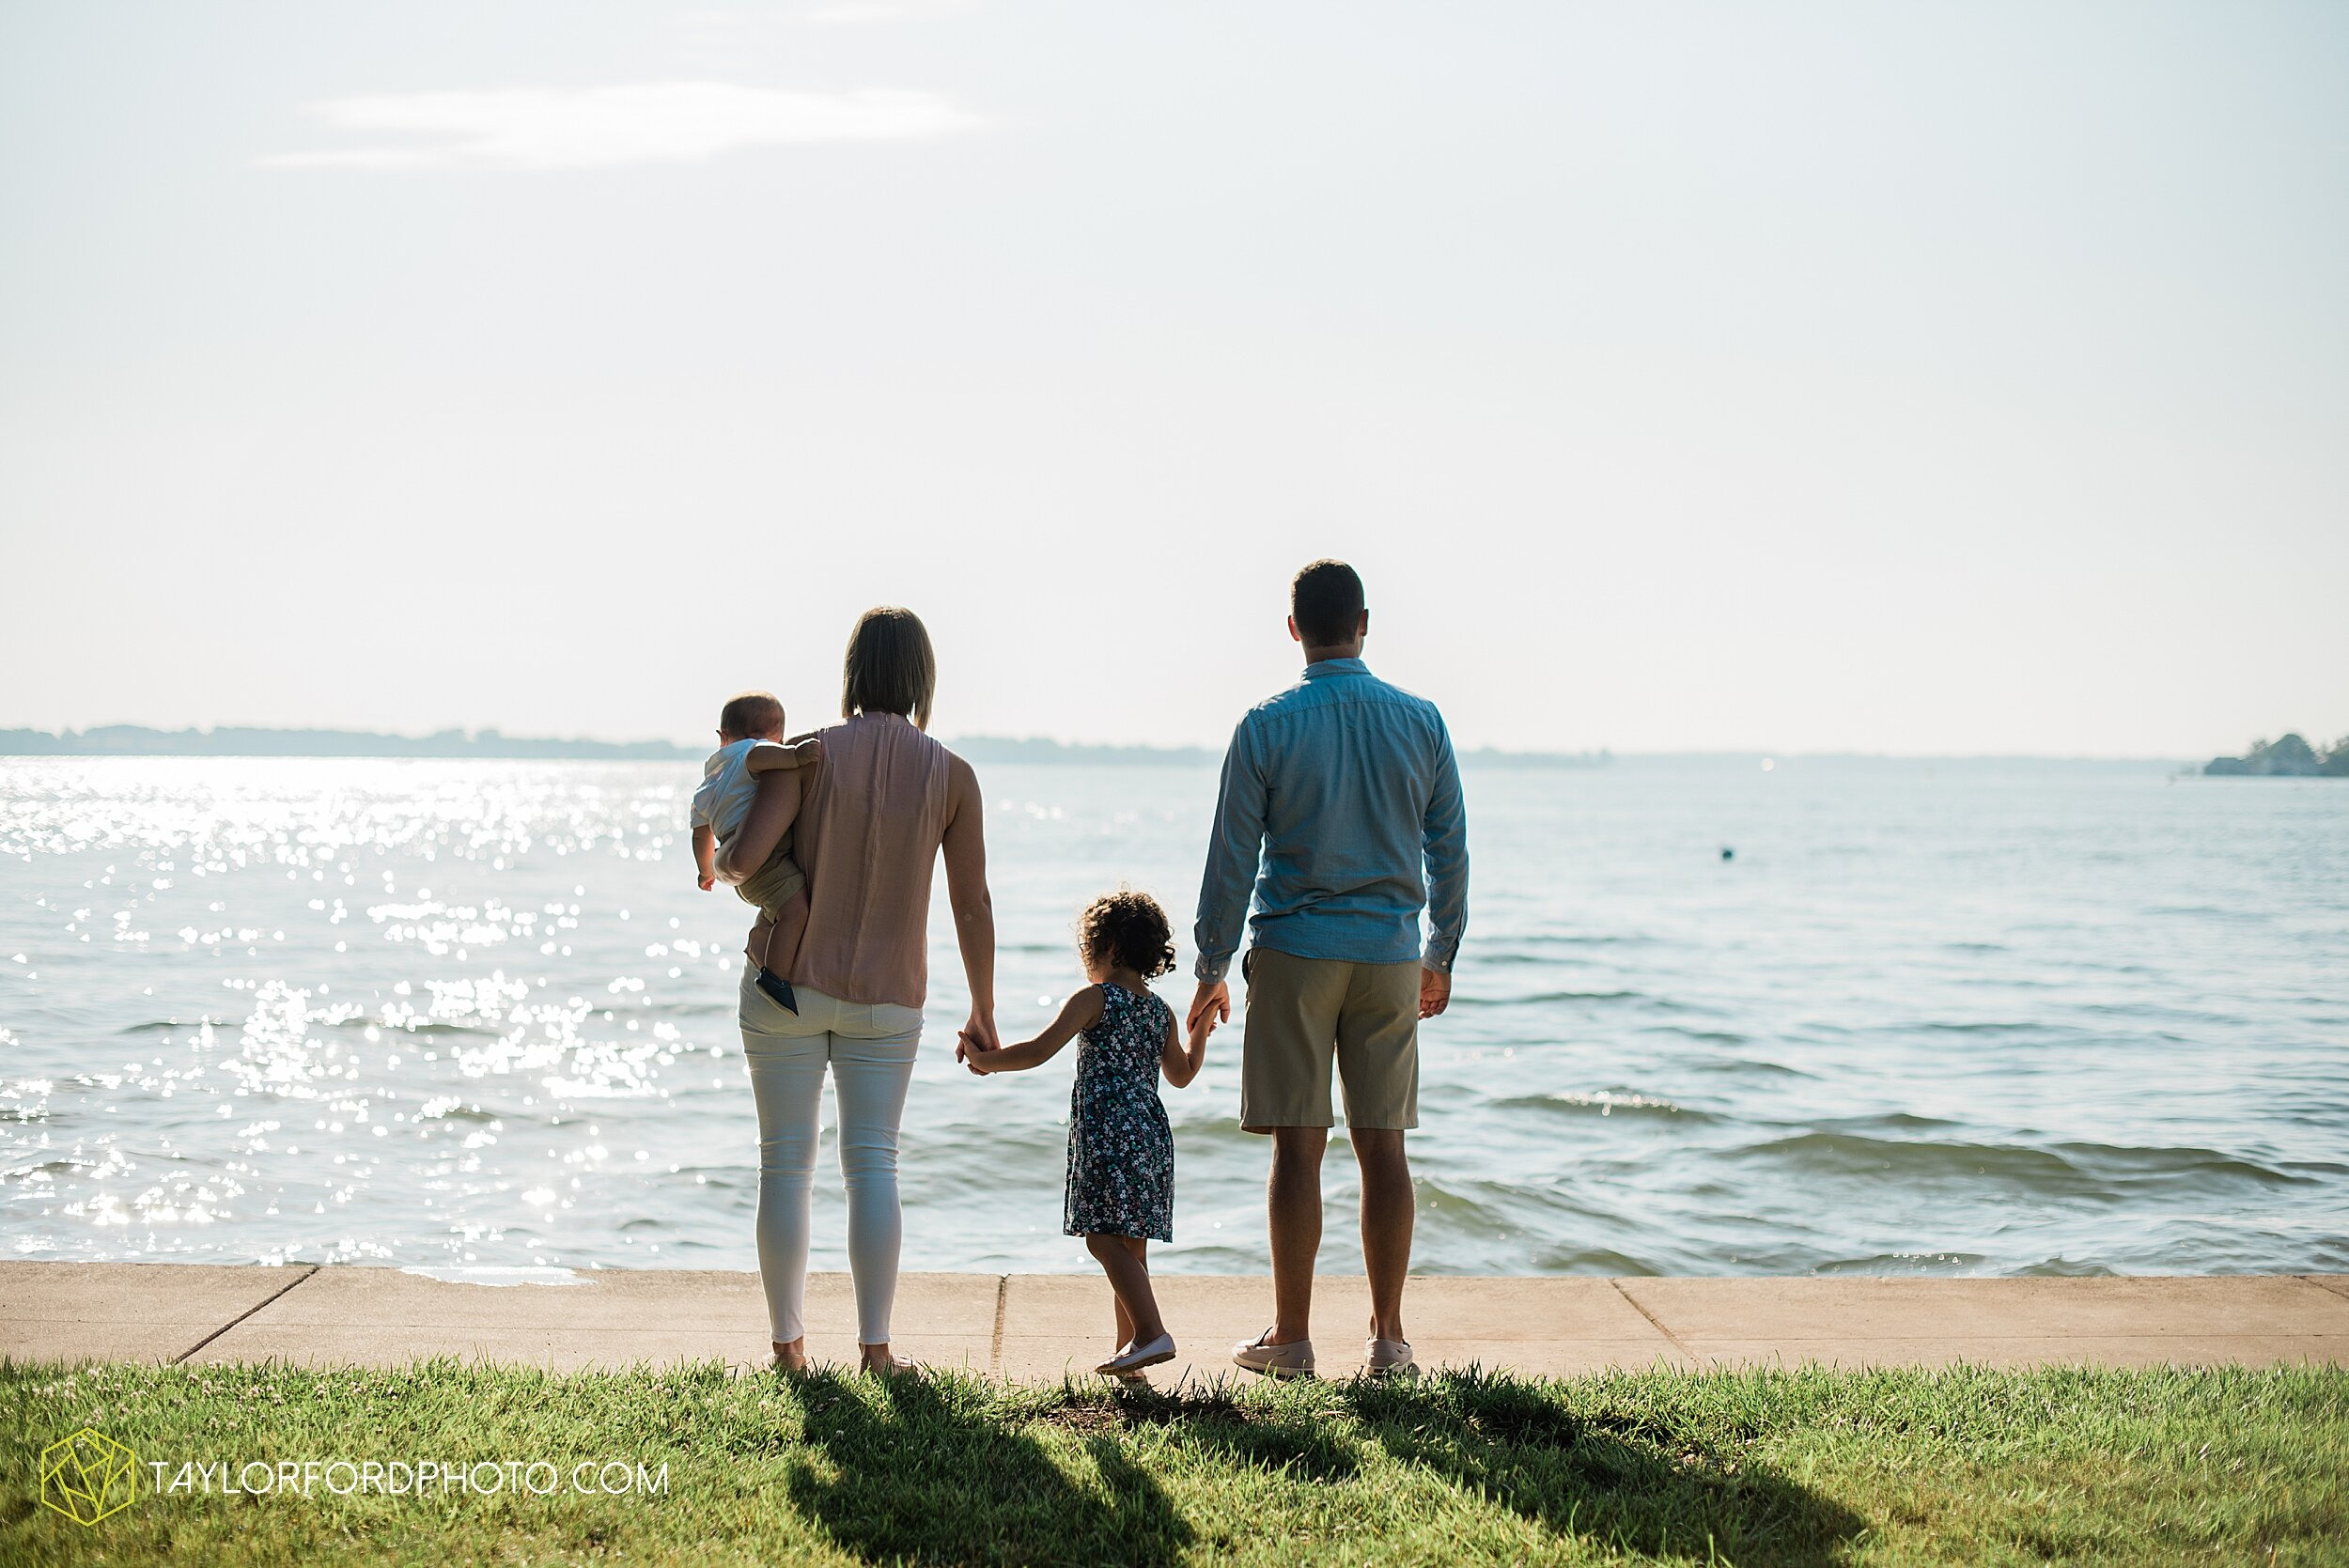 lake-wawasee-syracuse-indiana-oakwood-resort-family-mini-fourth-4th-of-july-summer-photography-taylor-ford-hirschy-photographer_3636.jpg